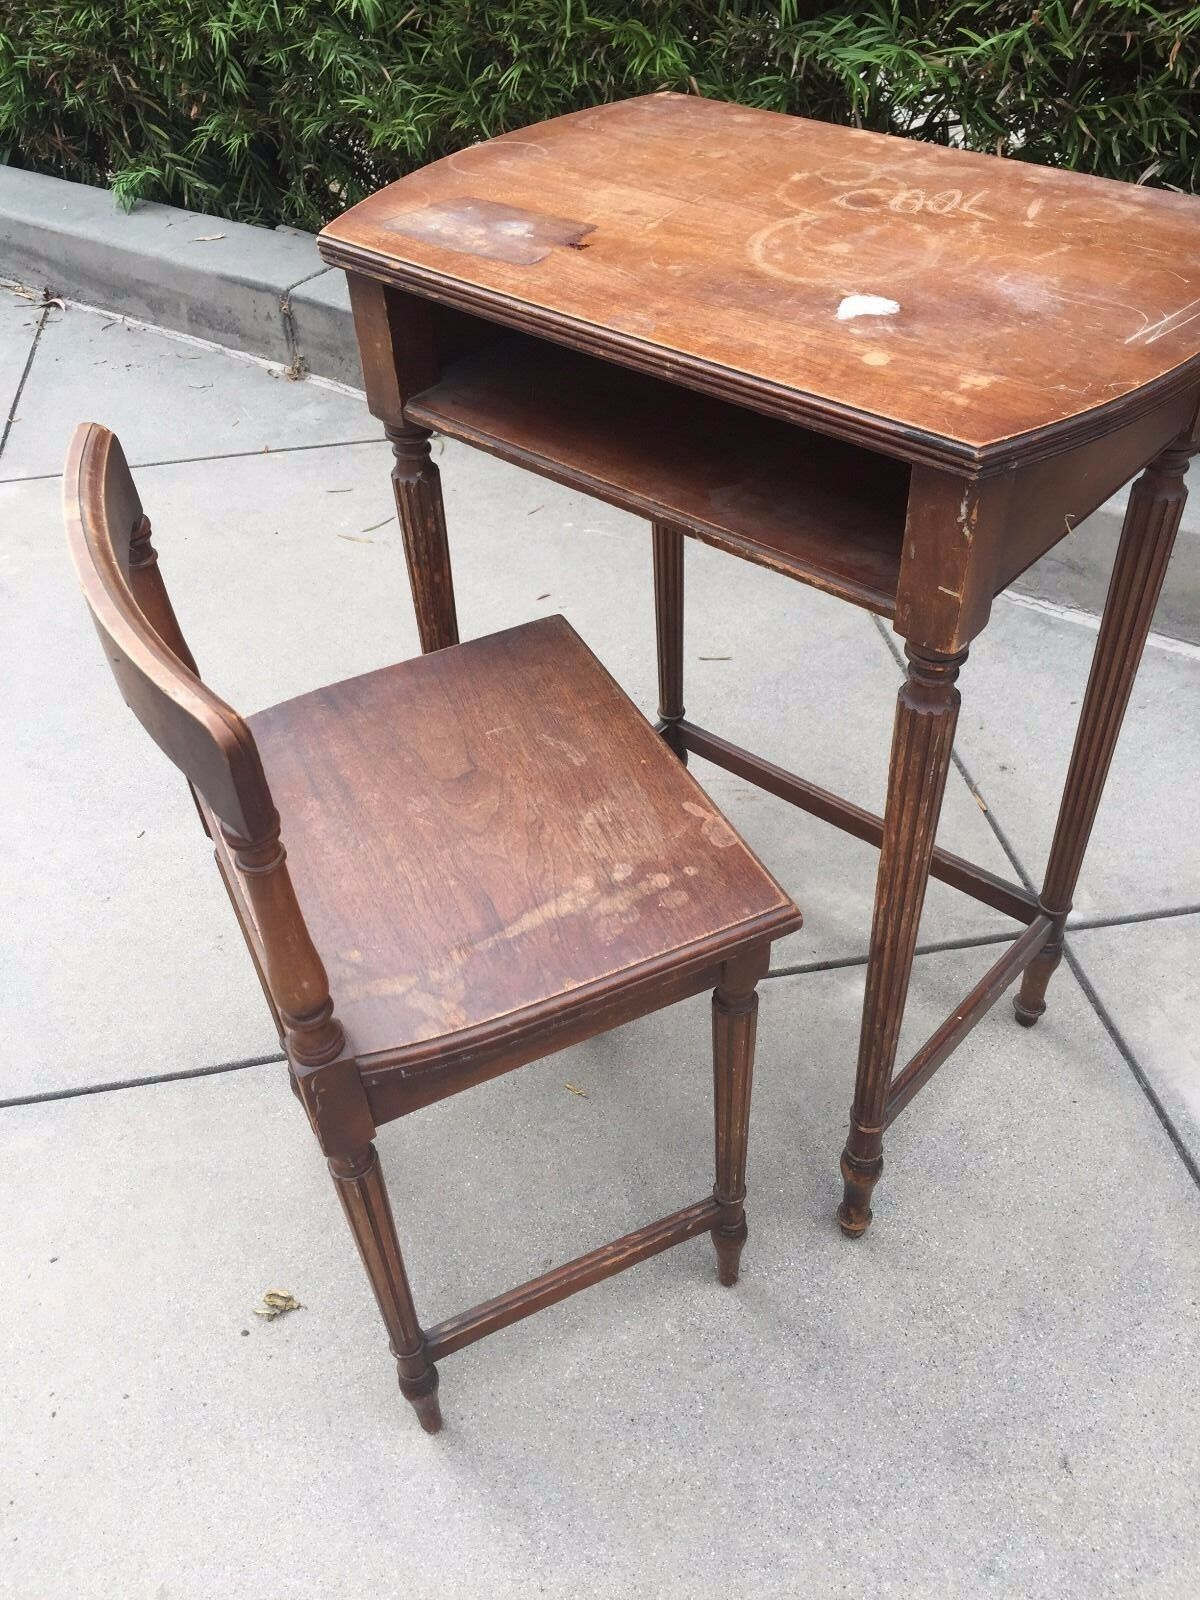 Antique Child's Desk with Chair 1 of 1Only 1 available ... - ANTIQUE CHILD'S DESK With Chair - $150.00 PicClick